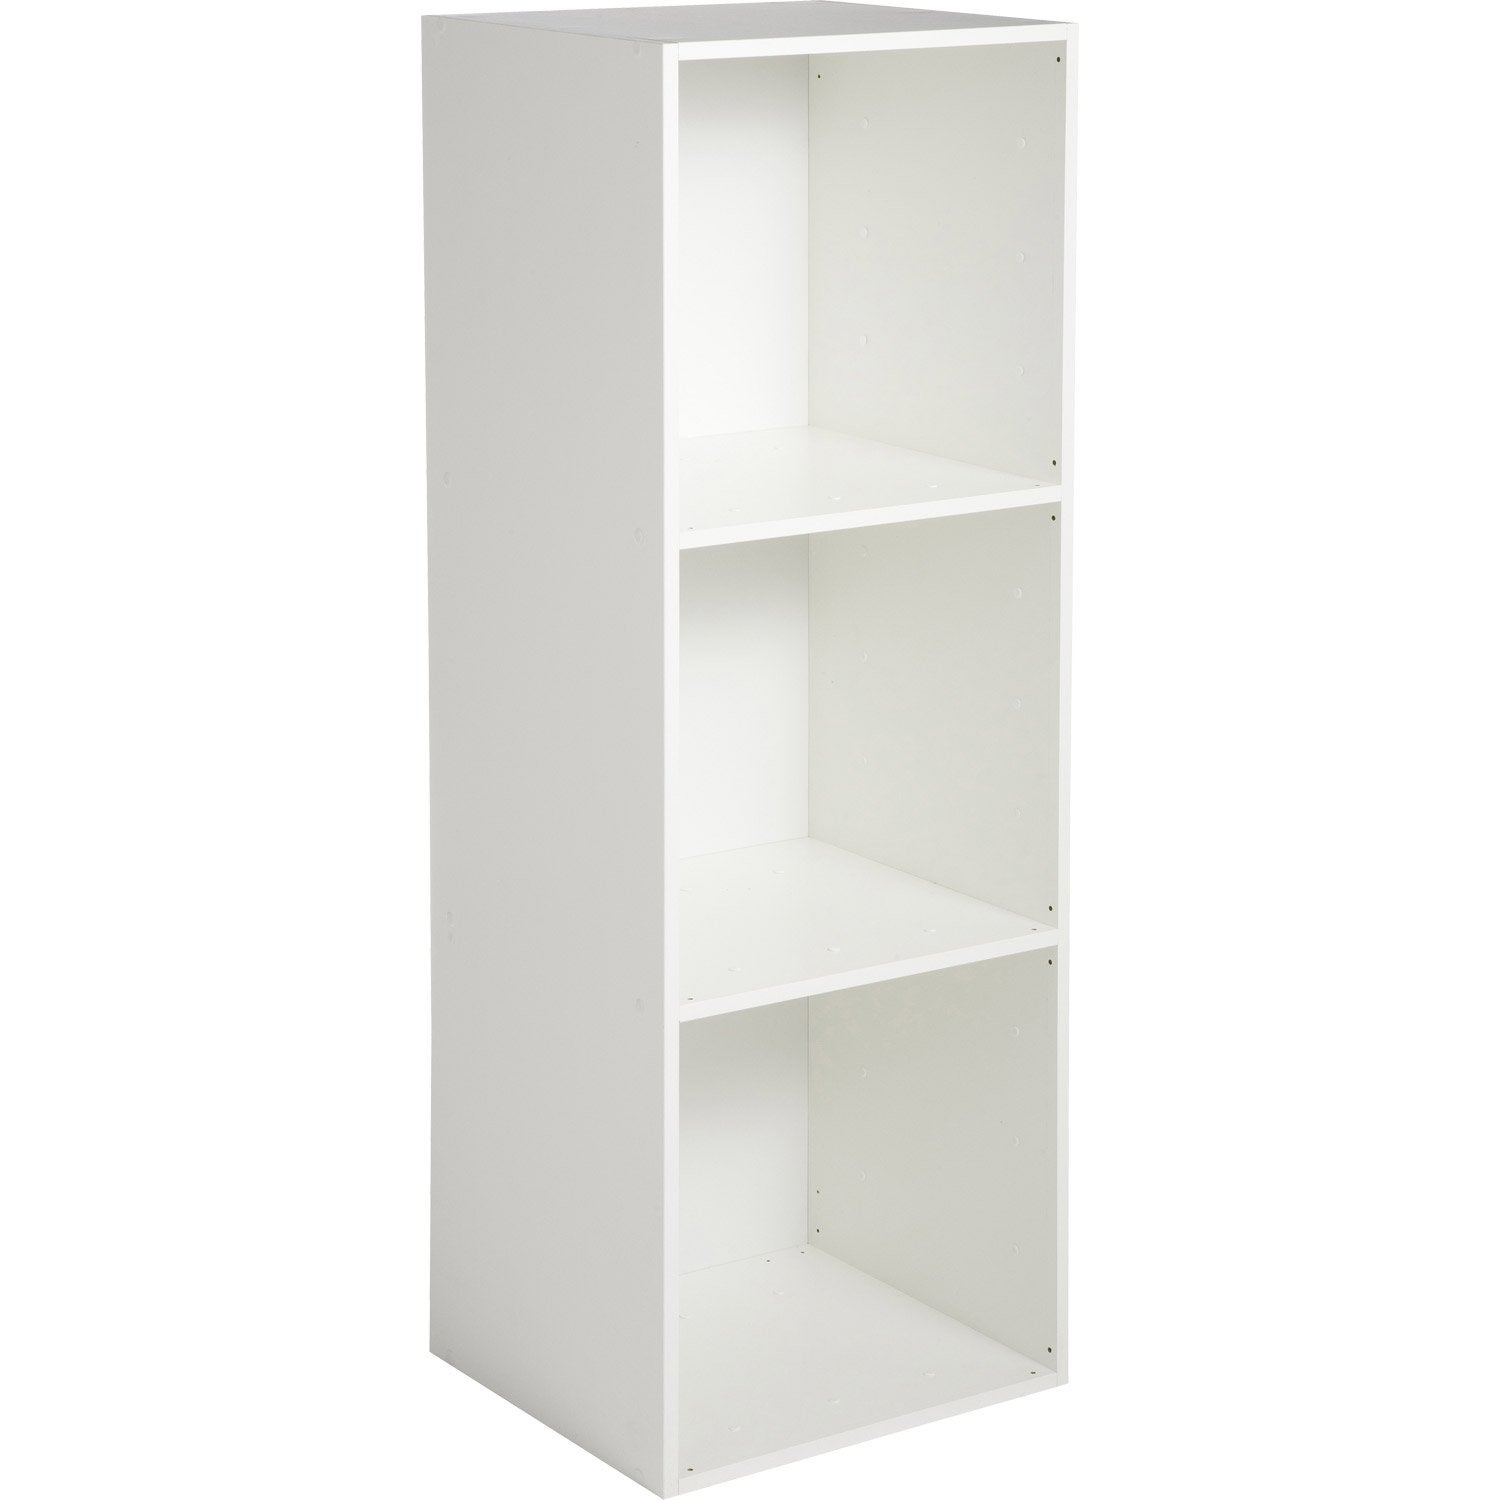 Etag re 3 cases multikaz blanc x x for Meuble 4 cases ikea